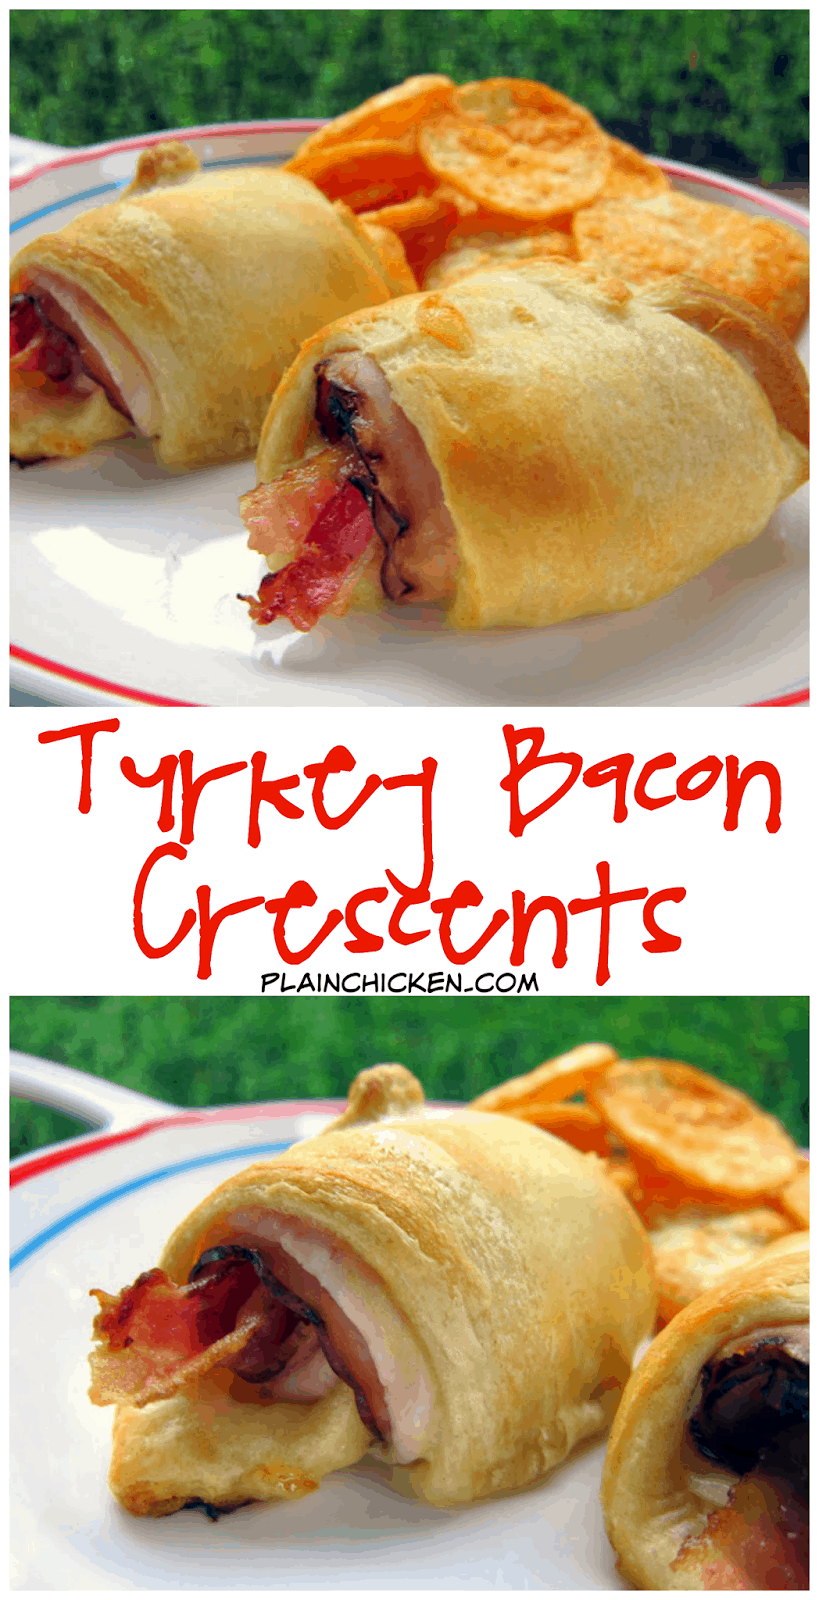 Turkey Bacon Crescents recipe - super quick hot sandwiches - only 5 ingredients - SO good! Quick weeknight meal that is ready in 15 minutes. SOOO much better than an ordinary cold cut sandwich.